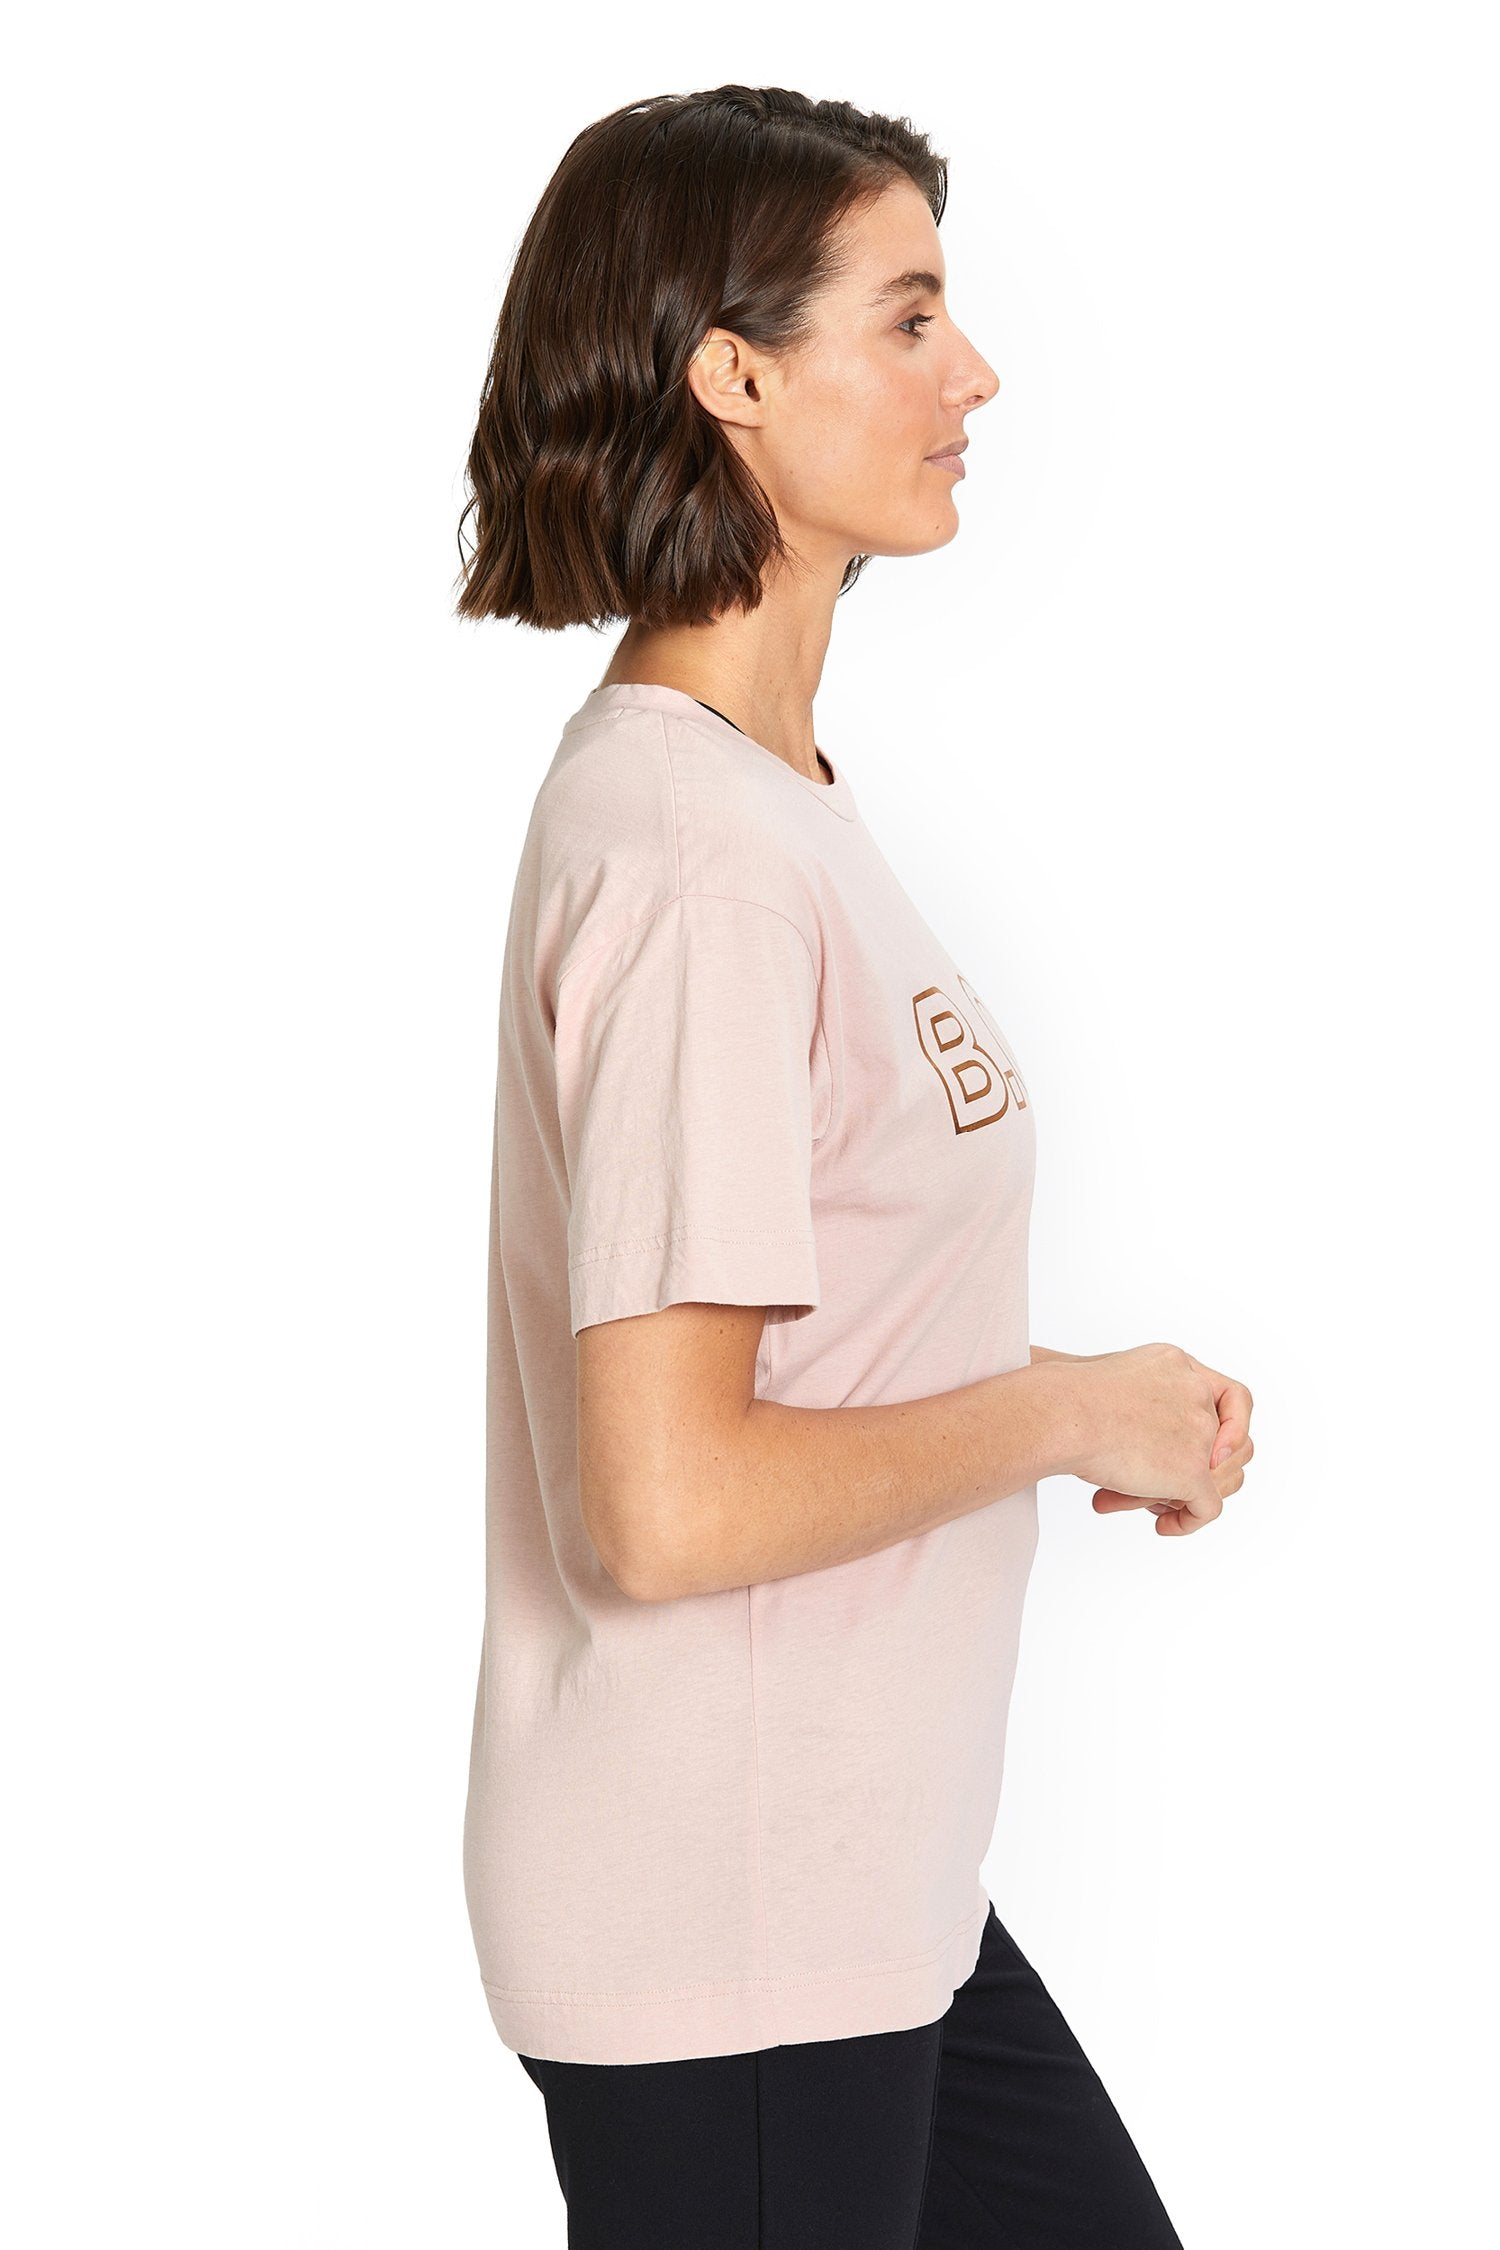 B.O.D by Rachel Finch Dusk Tee Asst Colours